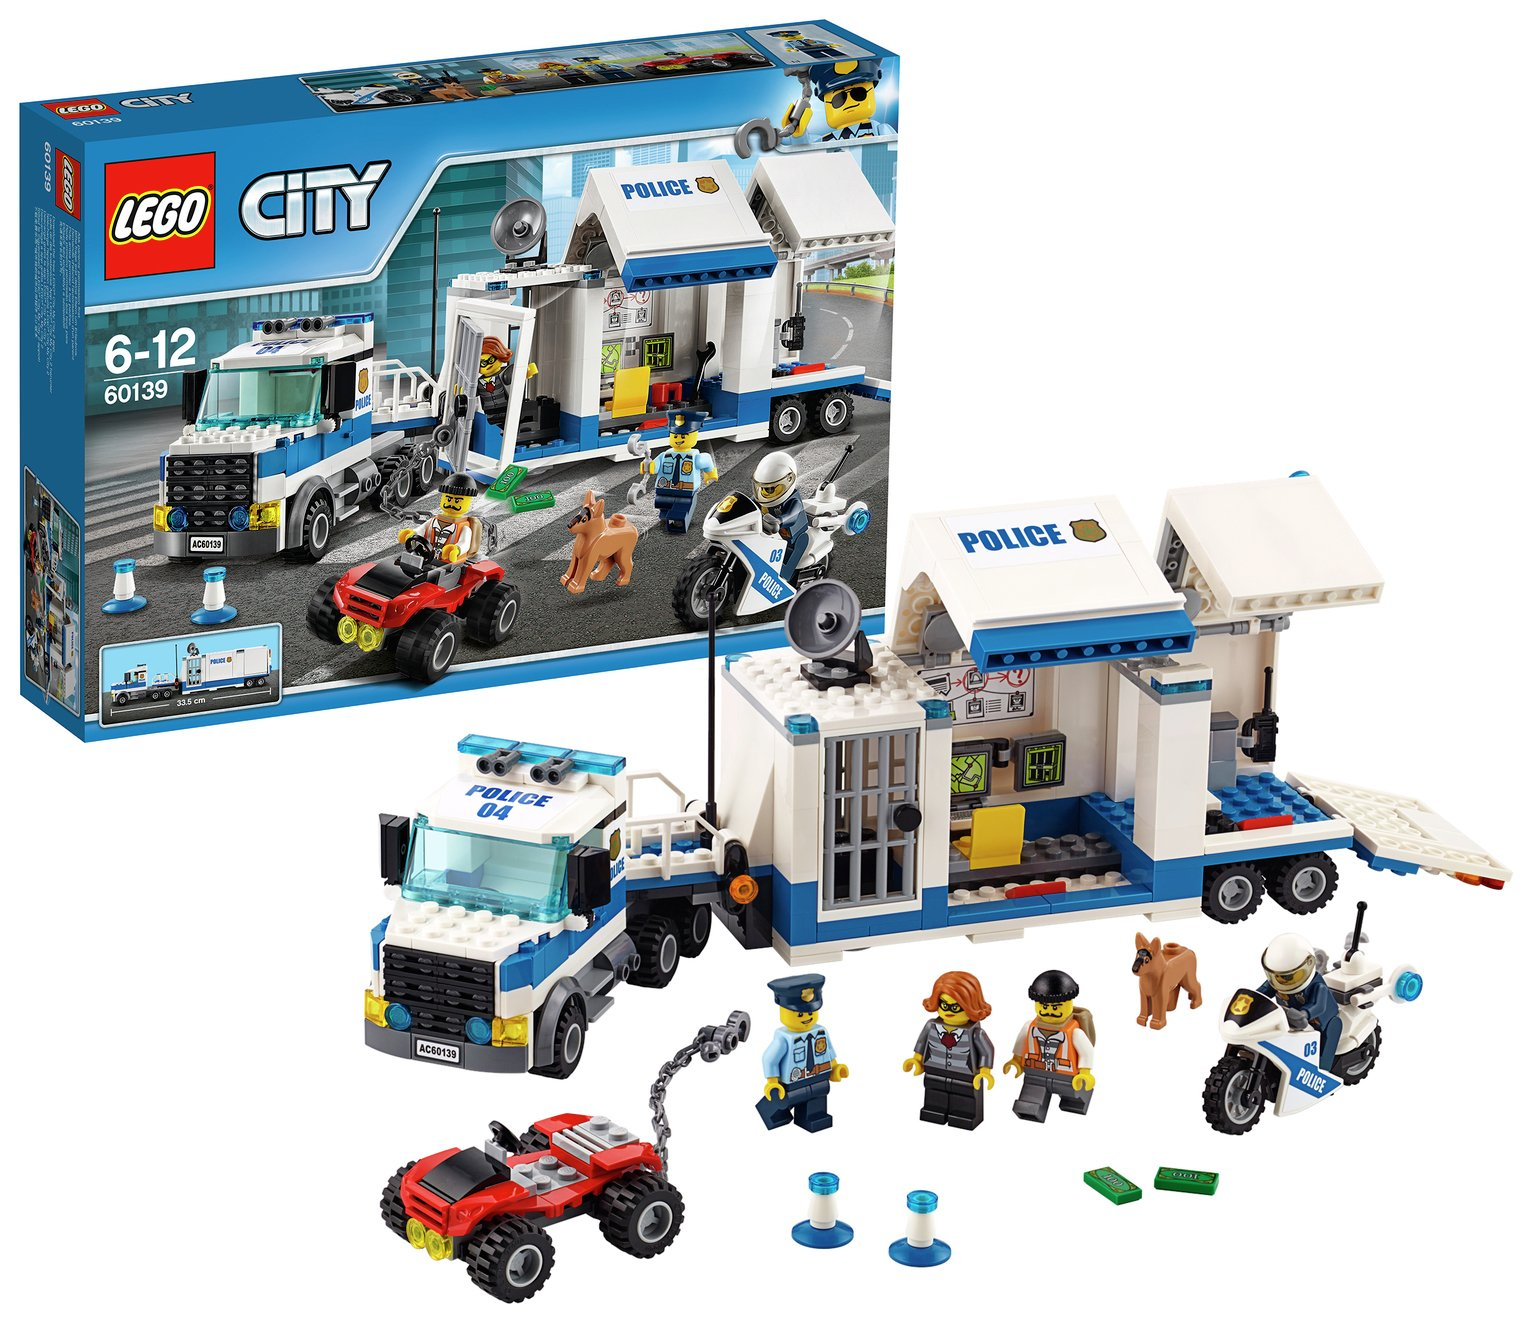 LEGO City Mobile Command Centre - 60139